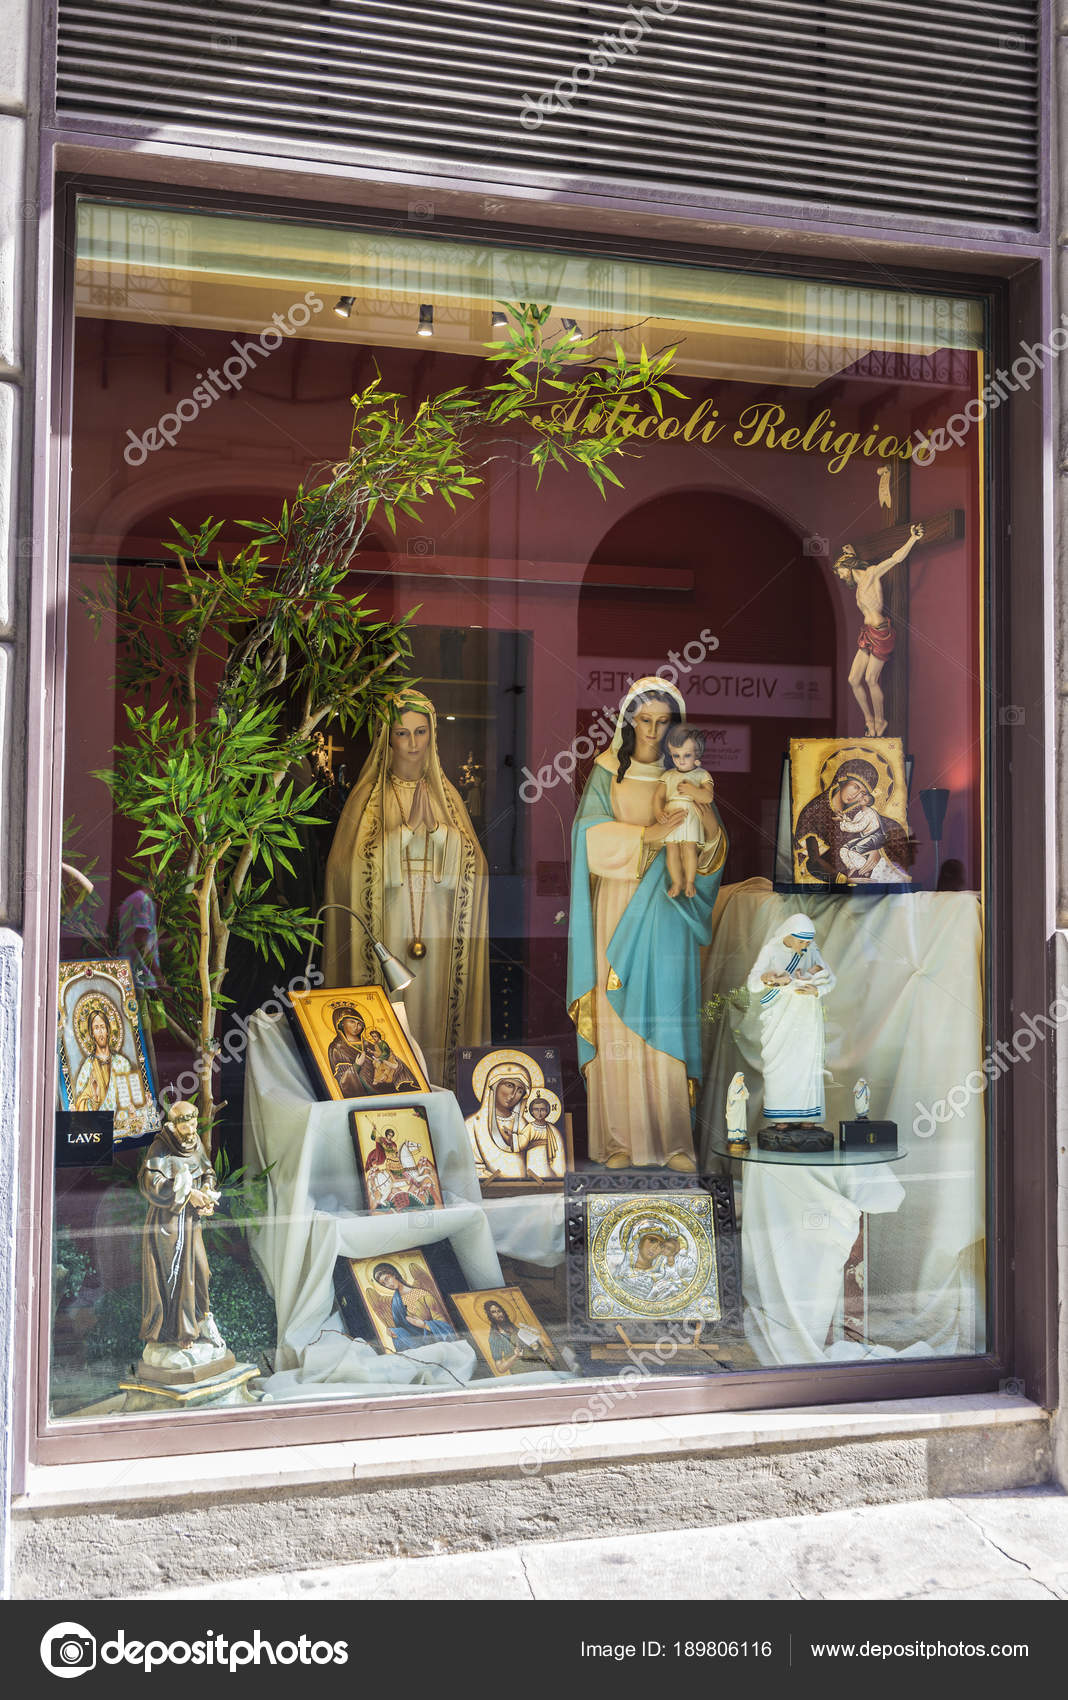 Store of Catholic religious items in Palermo, Sicily, Italy